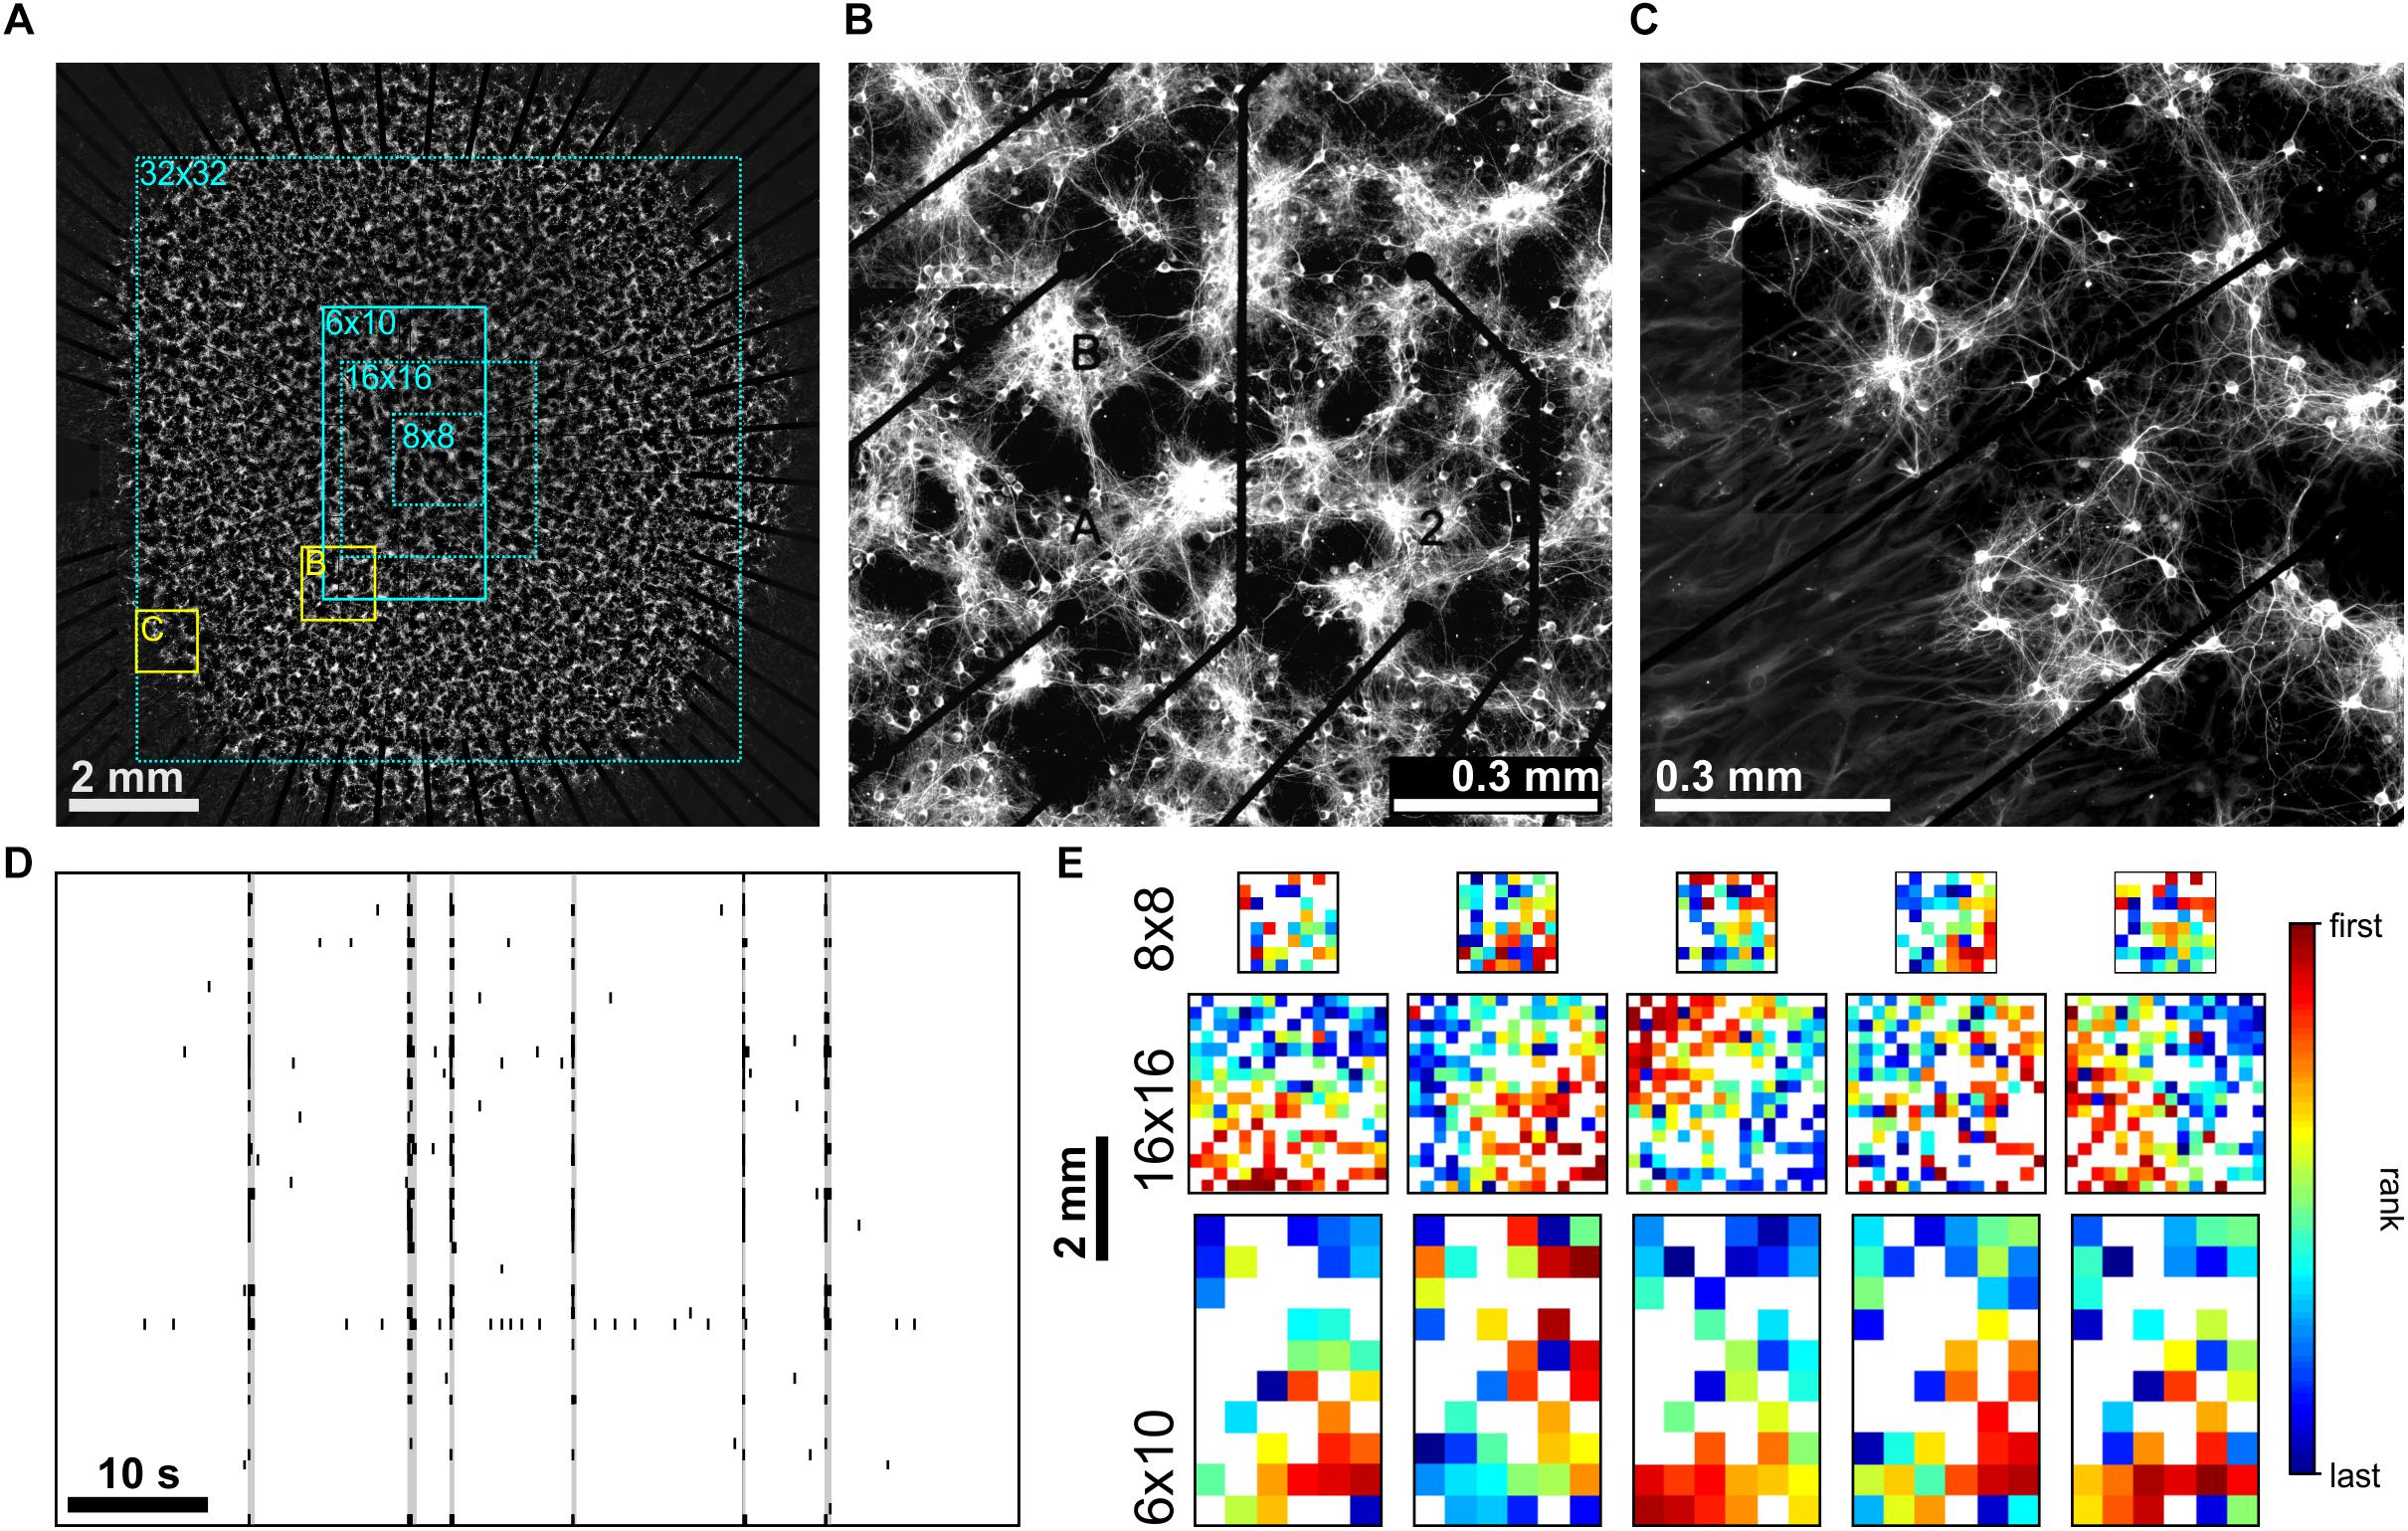 Frontiers Inhomogeneities In Network Structure And Excitability Govern Initiation And Propagation Of Spontaneous Burst Activity Neuroscience